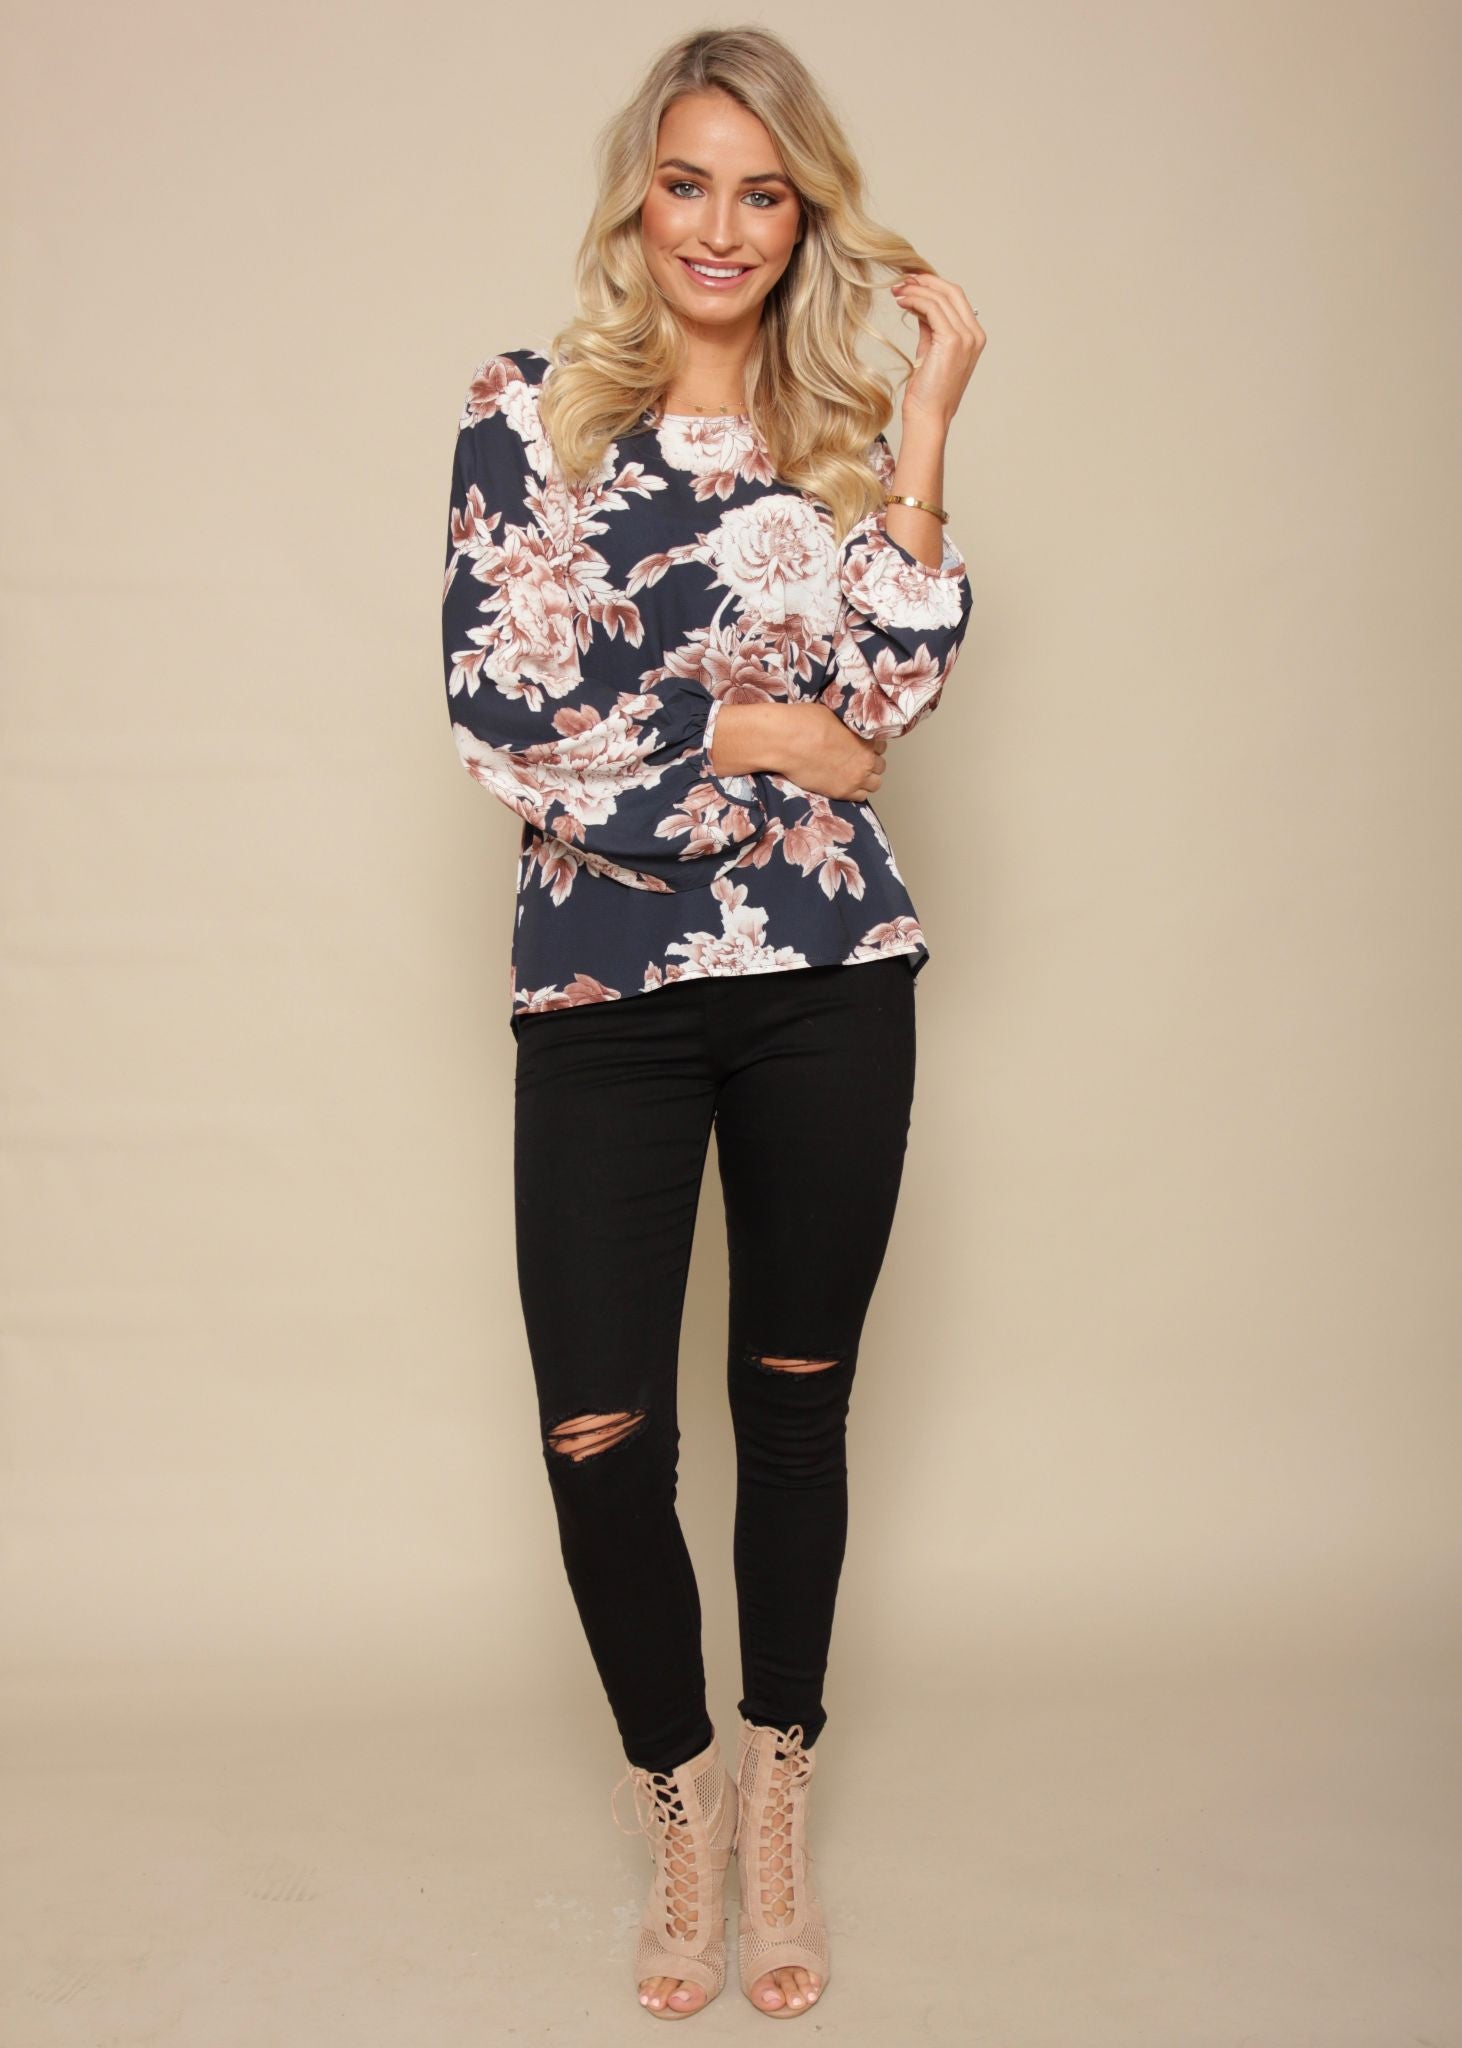 Golden Lights Blouse - Navy Floral